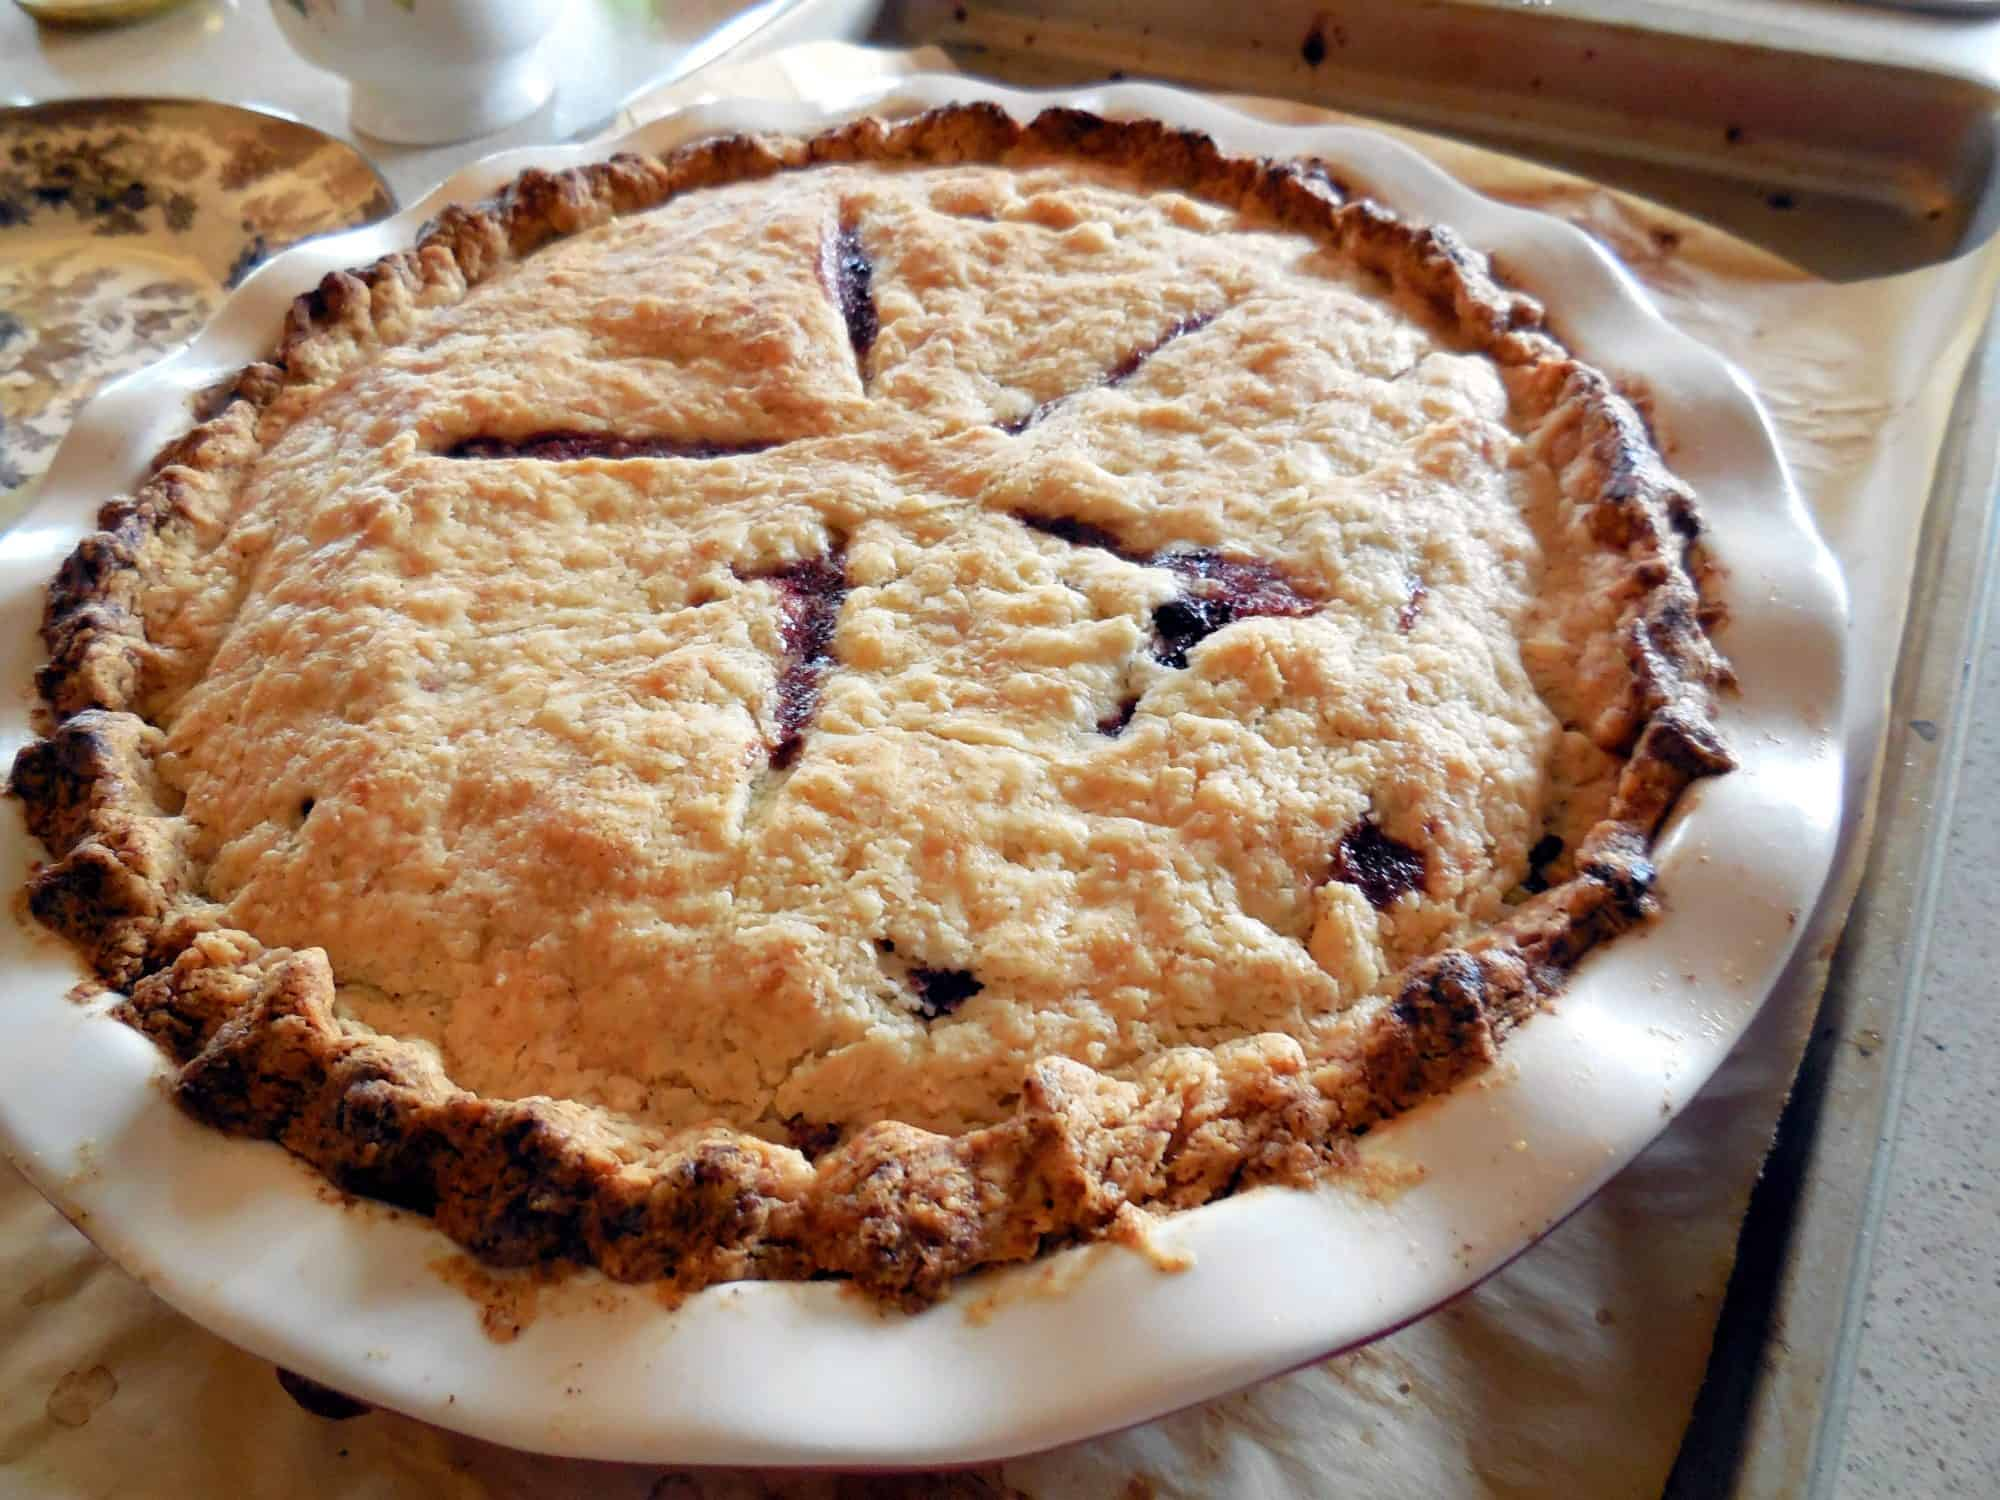 Aroniaberry Love and 6 Recipes. A fresh from the oven aroniaberry pie with a beautiful golden crust